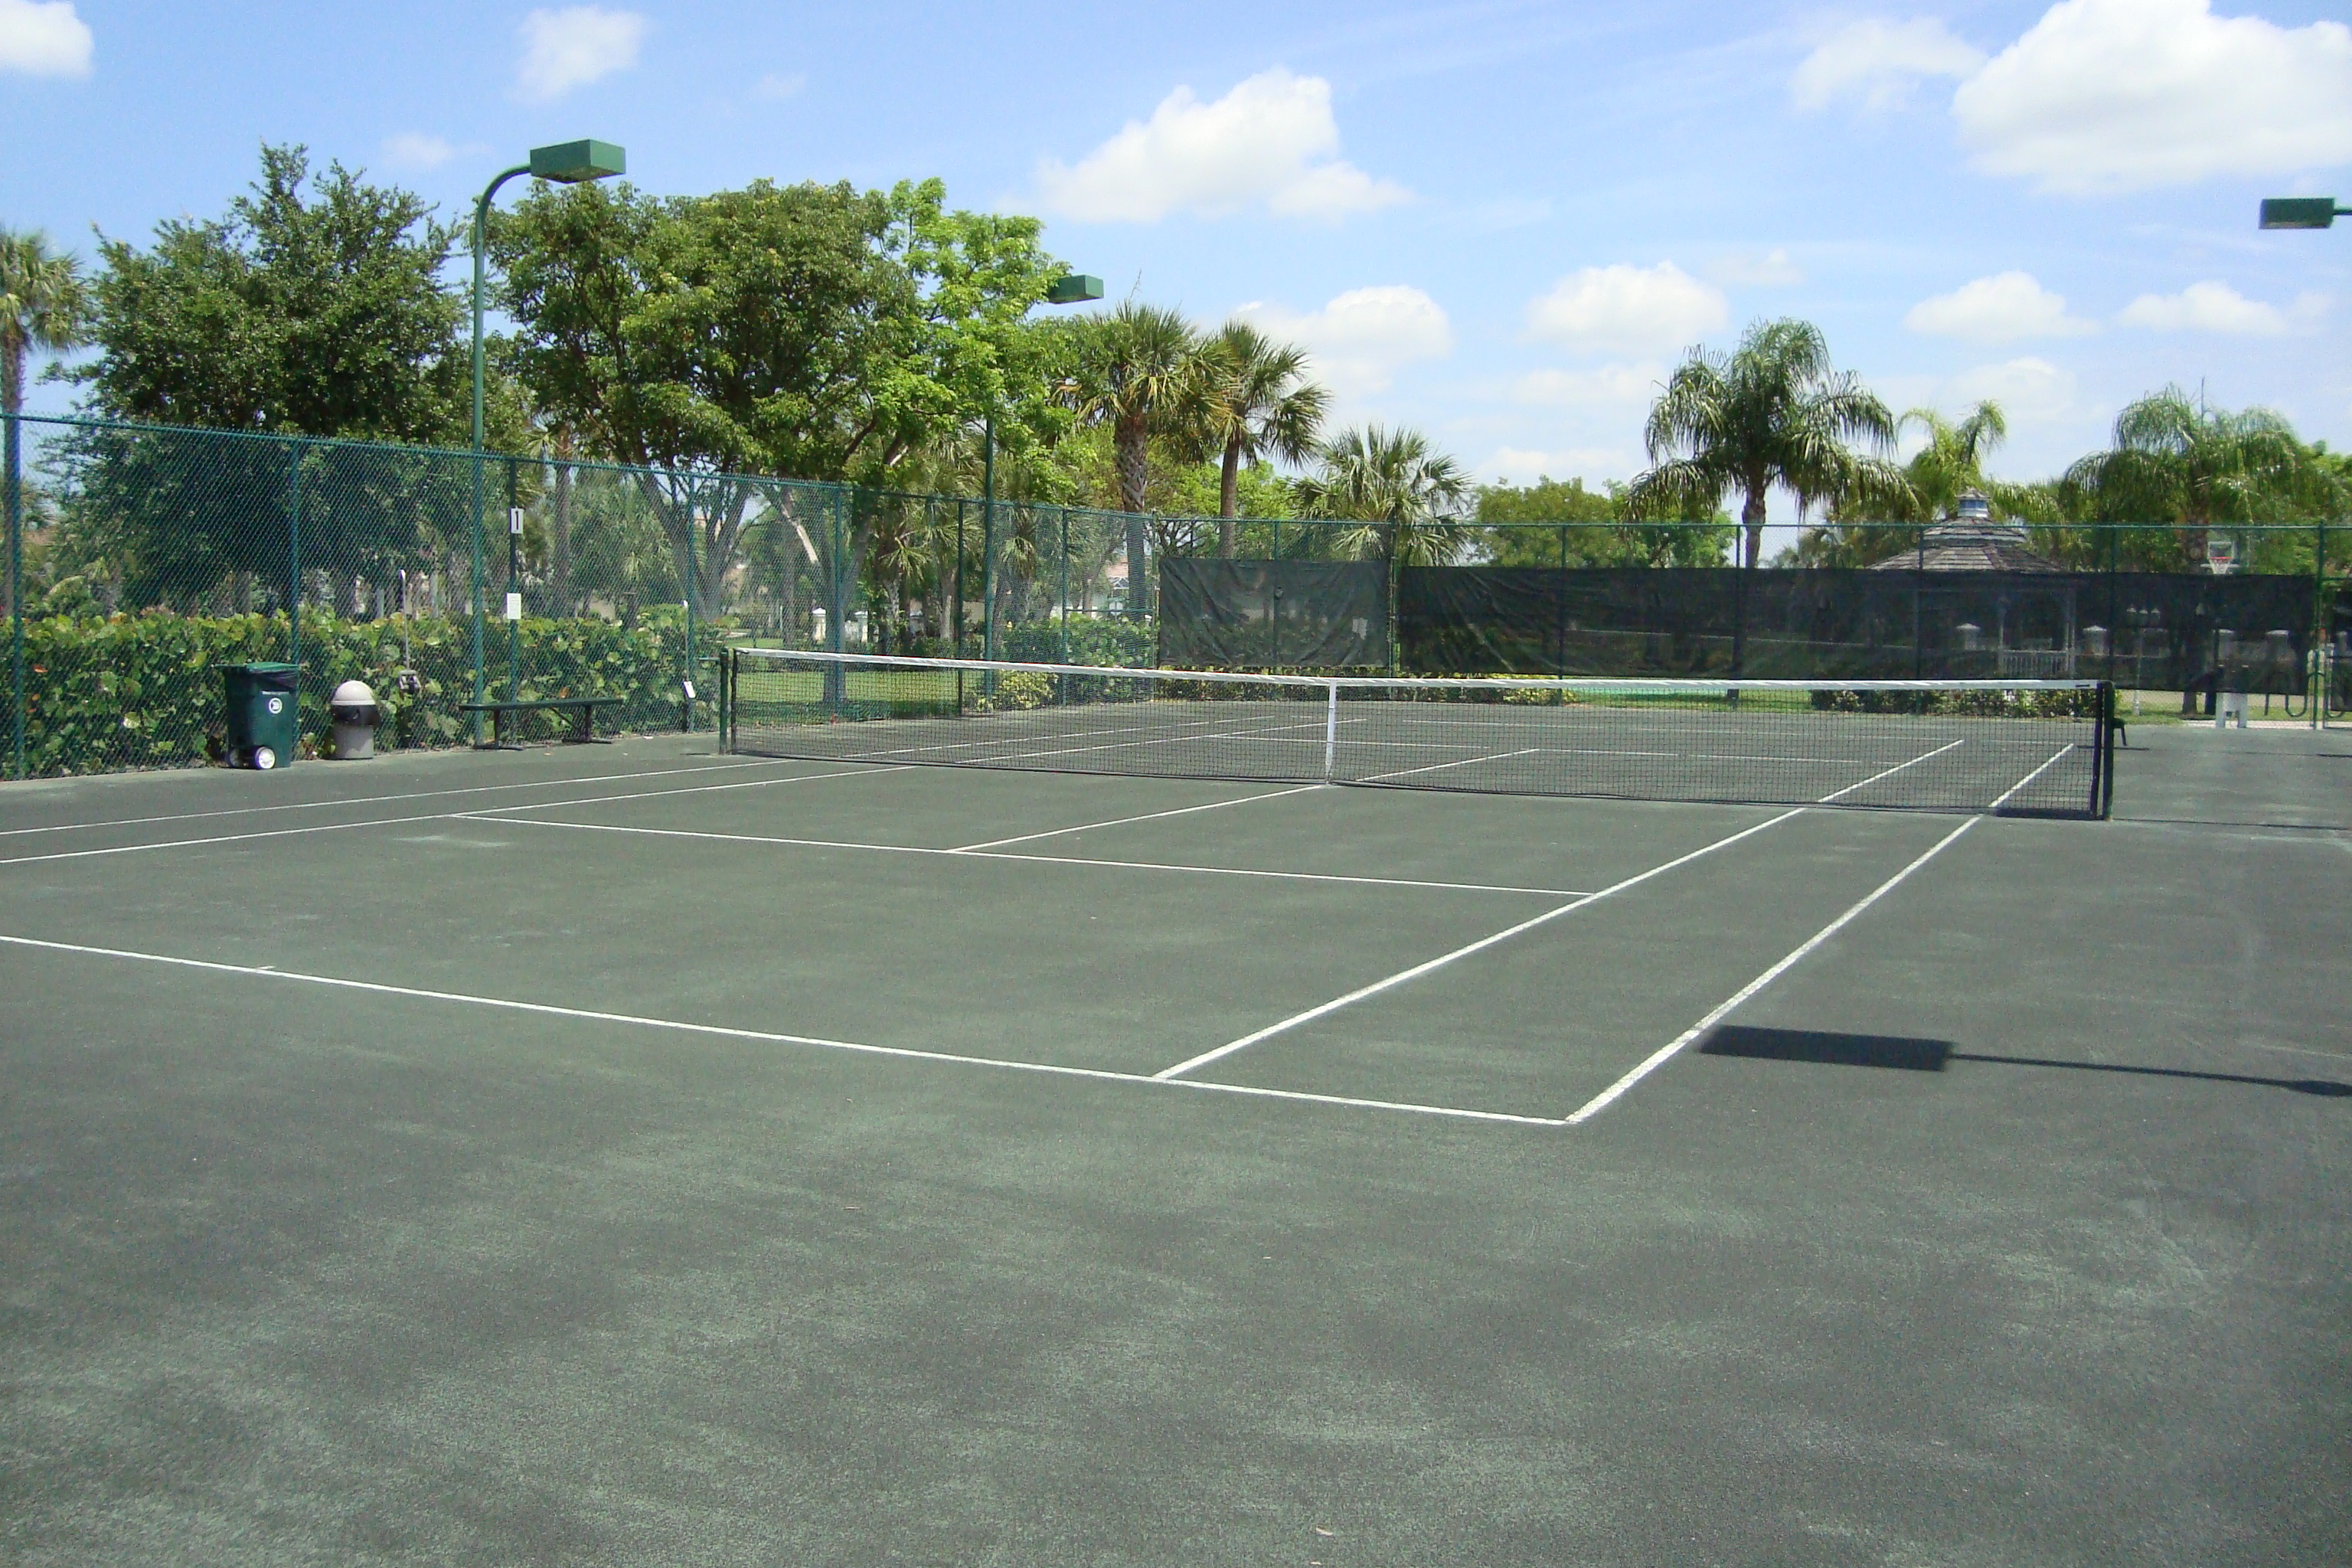 Tennis courts at Bridgewater Bay in Naples, Florida.